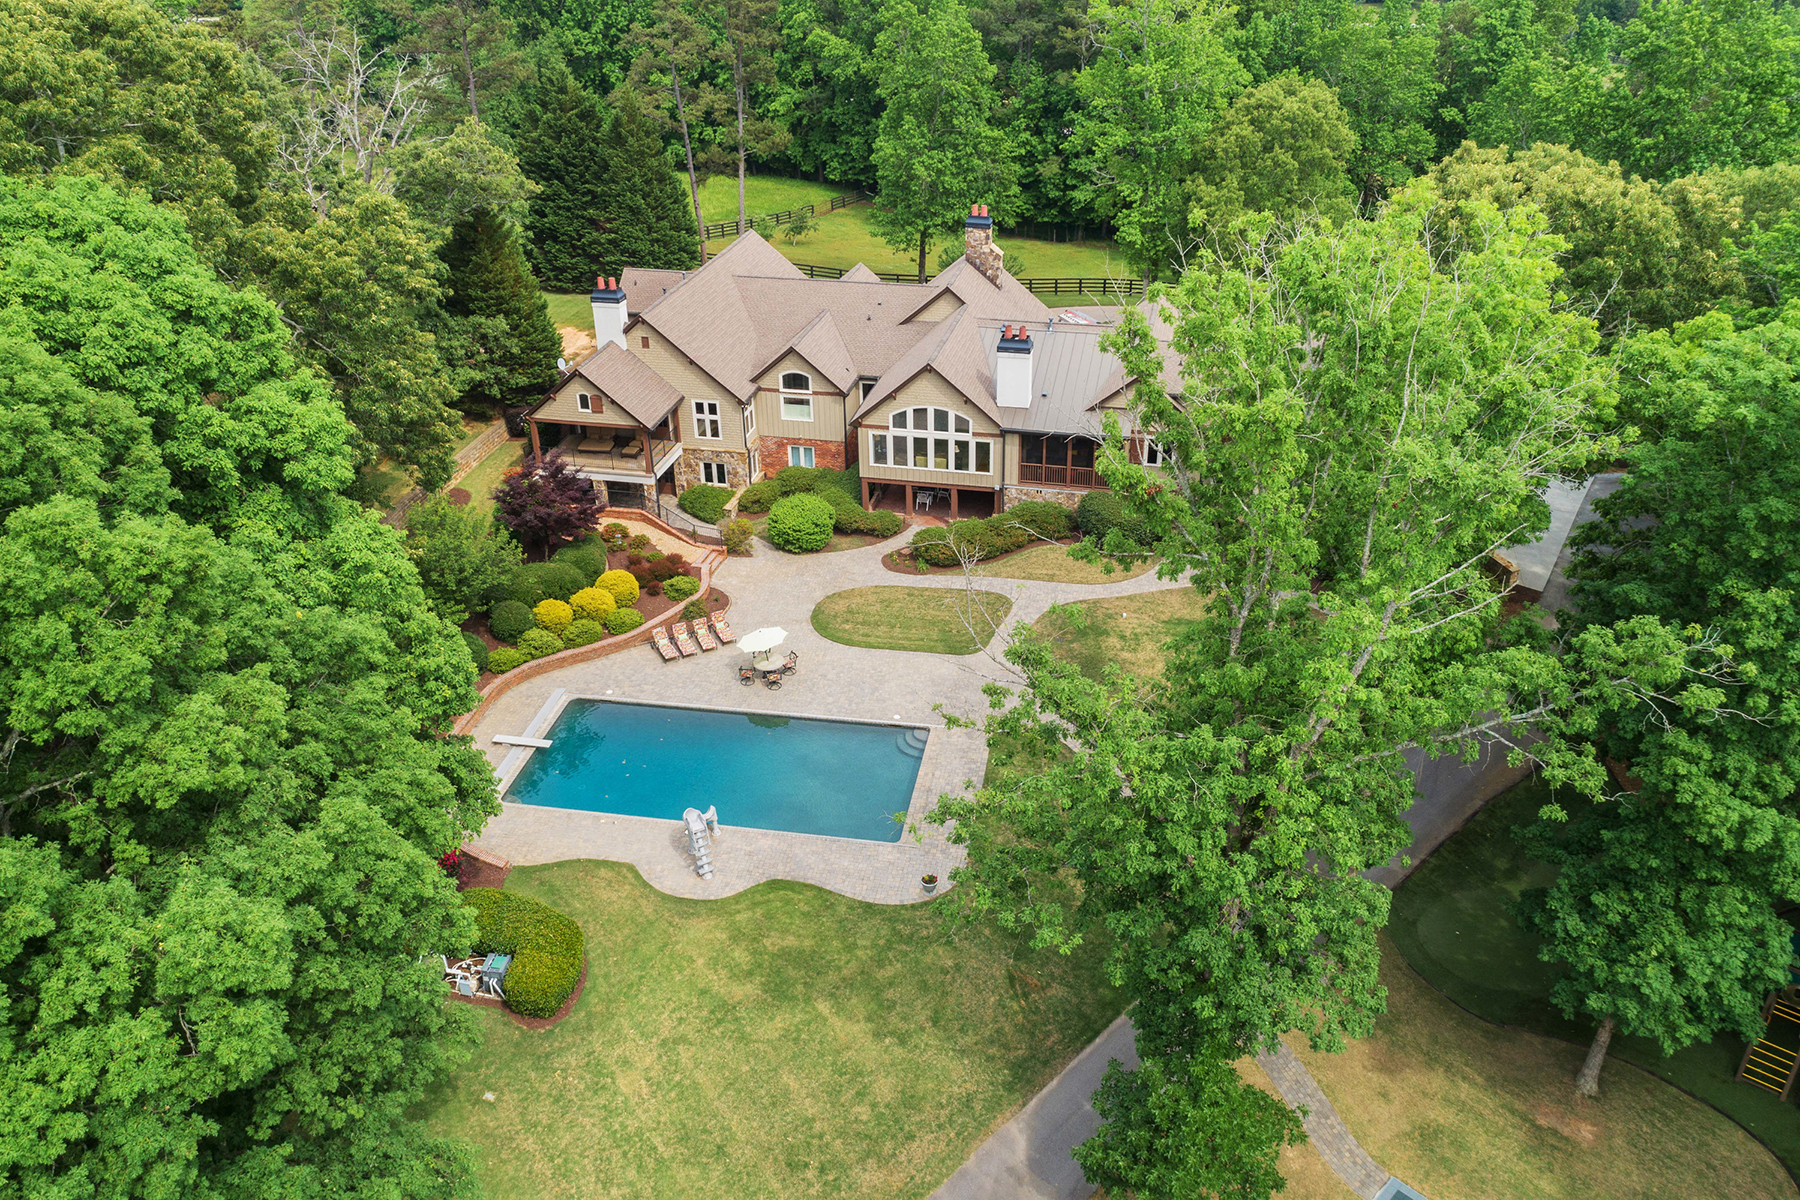 Additional photo for property listing at Stunning, Completely Renovated, Private, and Gated 25 Acre Equestrian Estate! 3961-R Sloan Mill Road Gainesville, Georgia 30507 United States